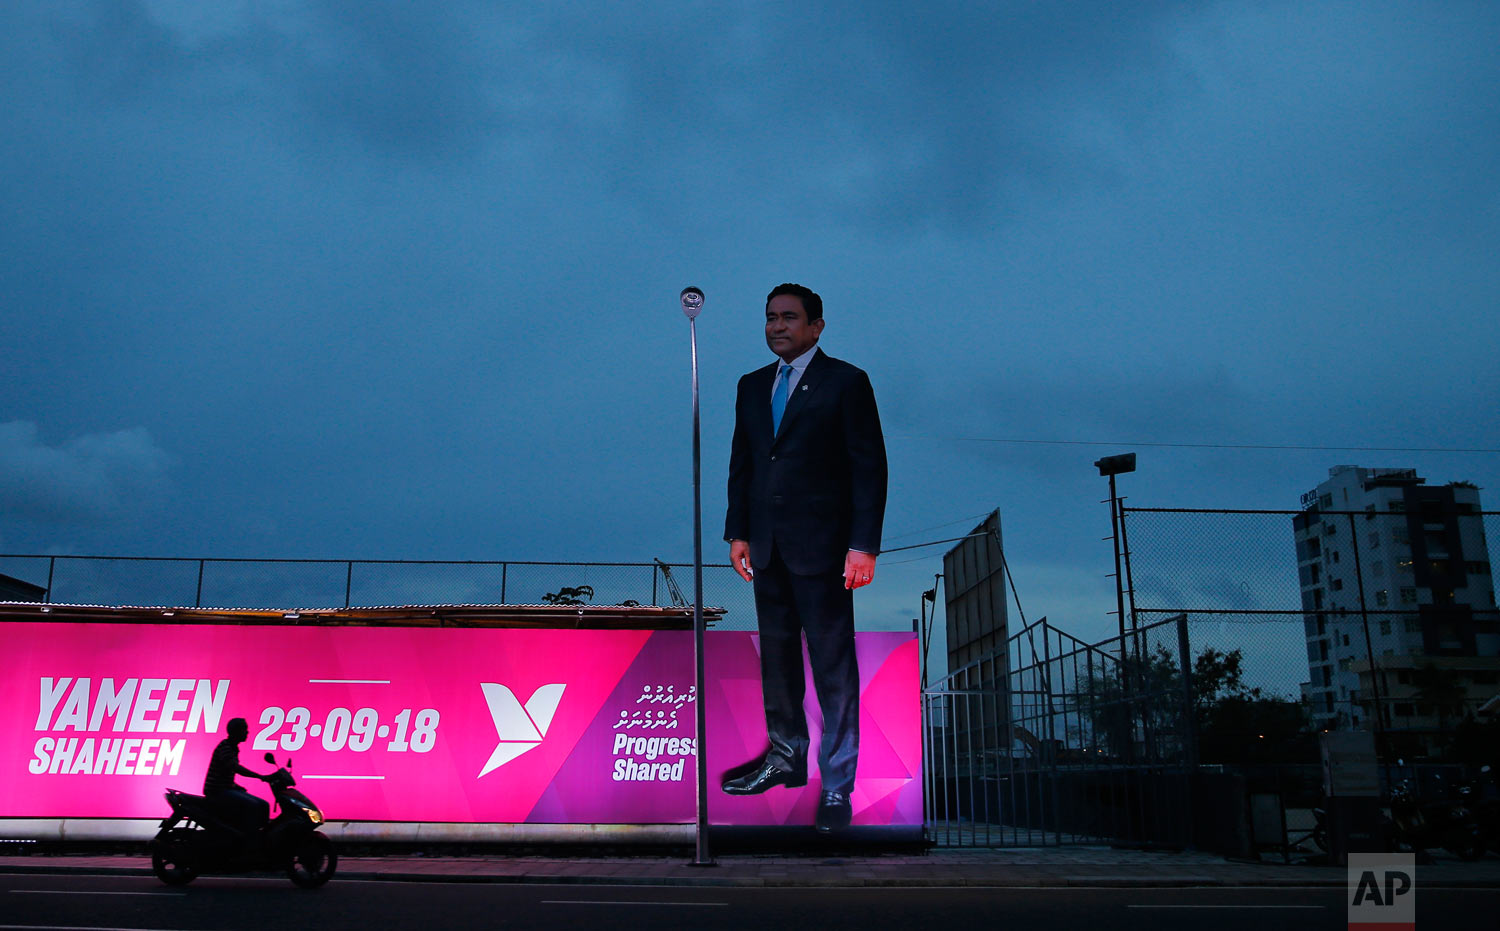 A giant cut-out of Maldivian President Yameen Abdul Gayoom stands on a road ahead of Sunday's elections in Male, Maldives, Friday, Sept. 21, 2018. A decade after Maldivians took to the streets to welcome democracy to the series of coral atolls in the Indian Ocean, voters head to the ballot box in what has become a referendum on whether democracy will stay. (AP Photo/Eranga Jayawardena)